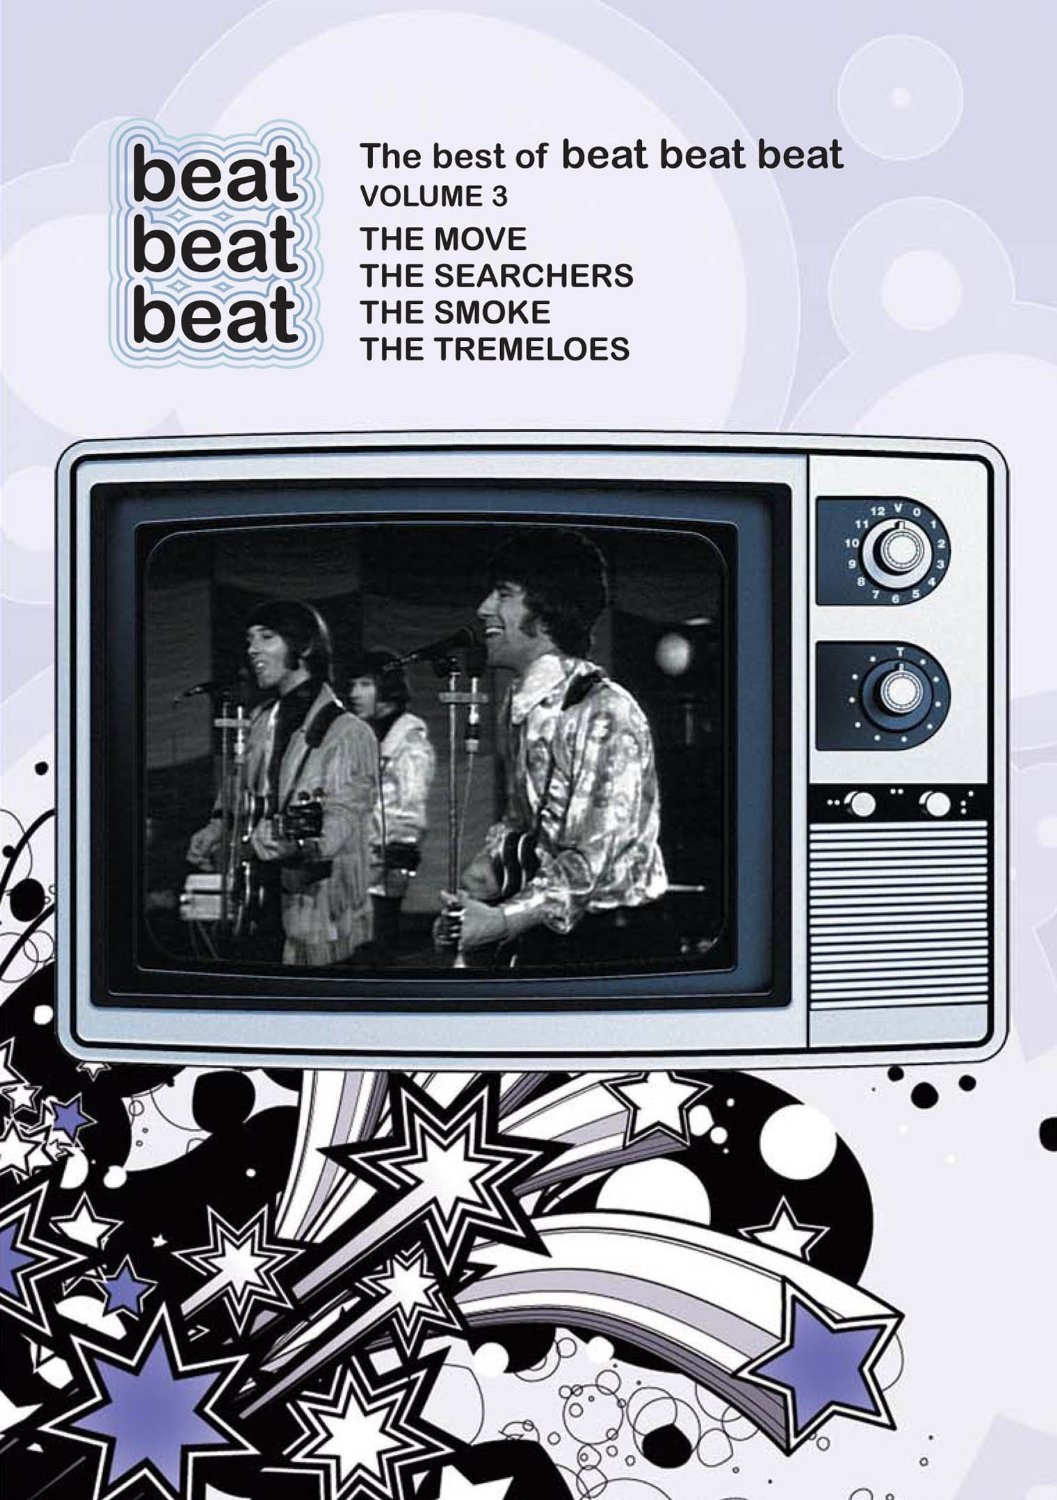 Best Of Beat Vol 3 The Searchers Move 2009 Smoke Tremeloes Movies Tv